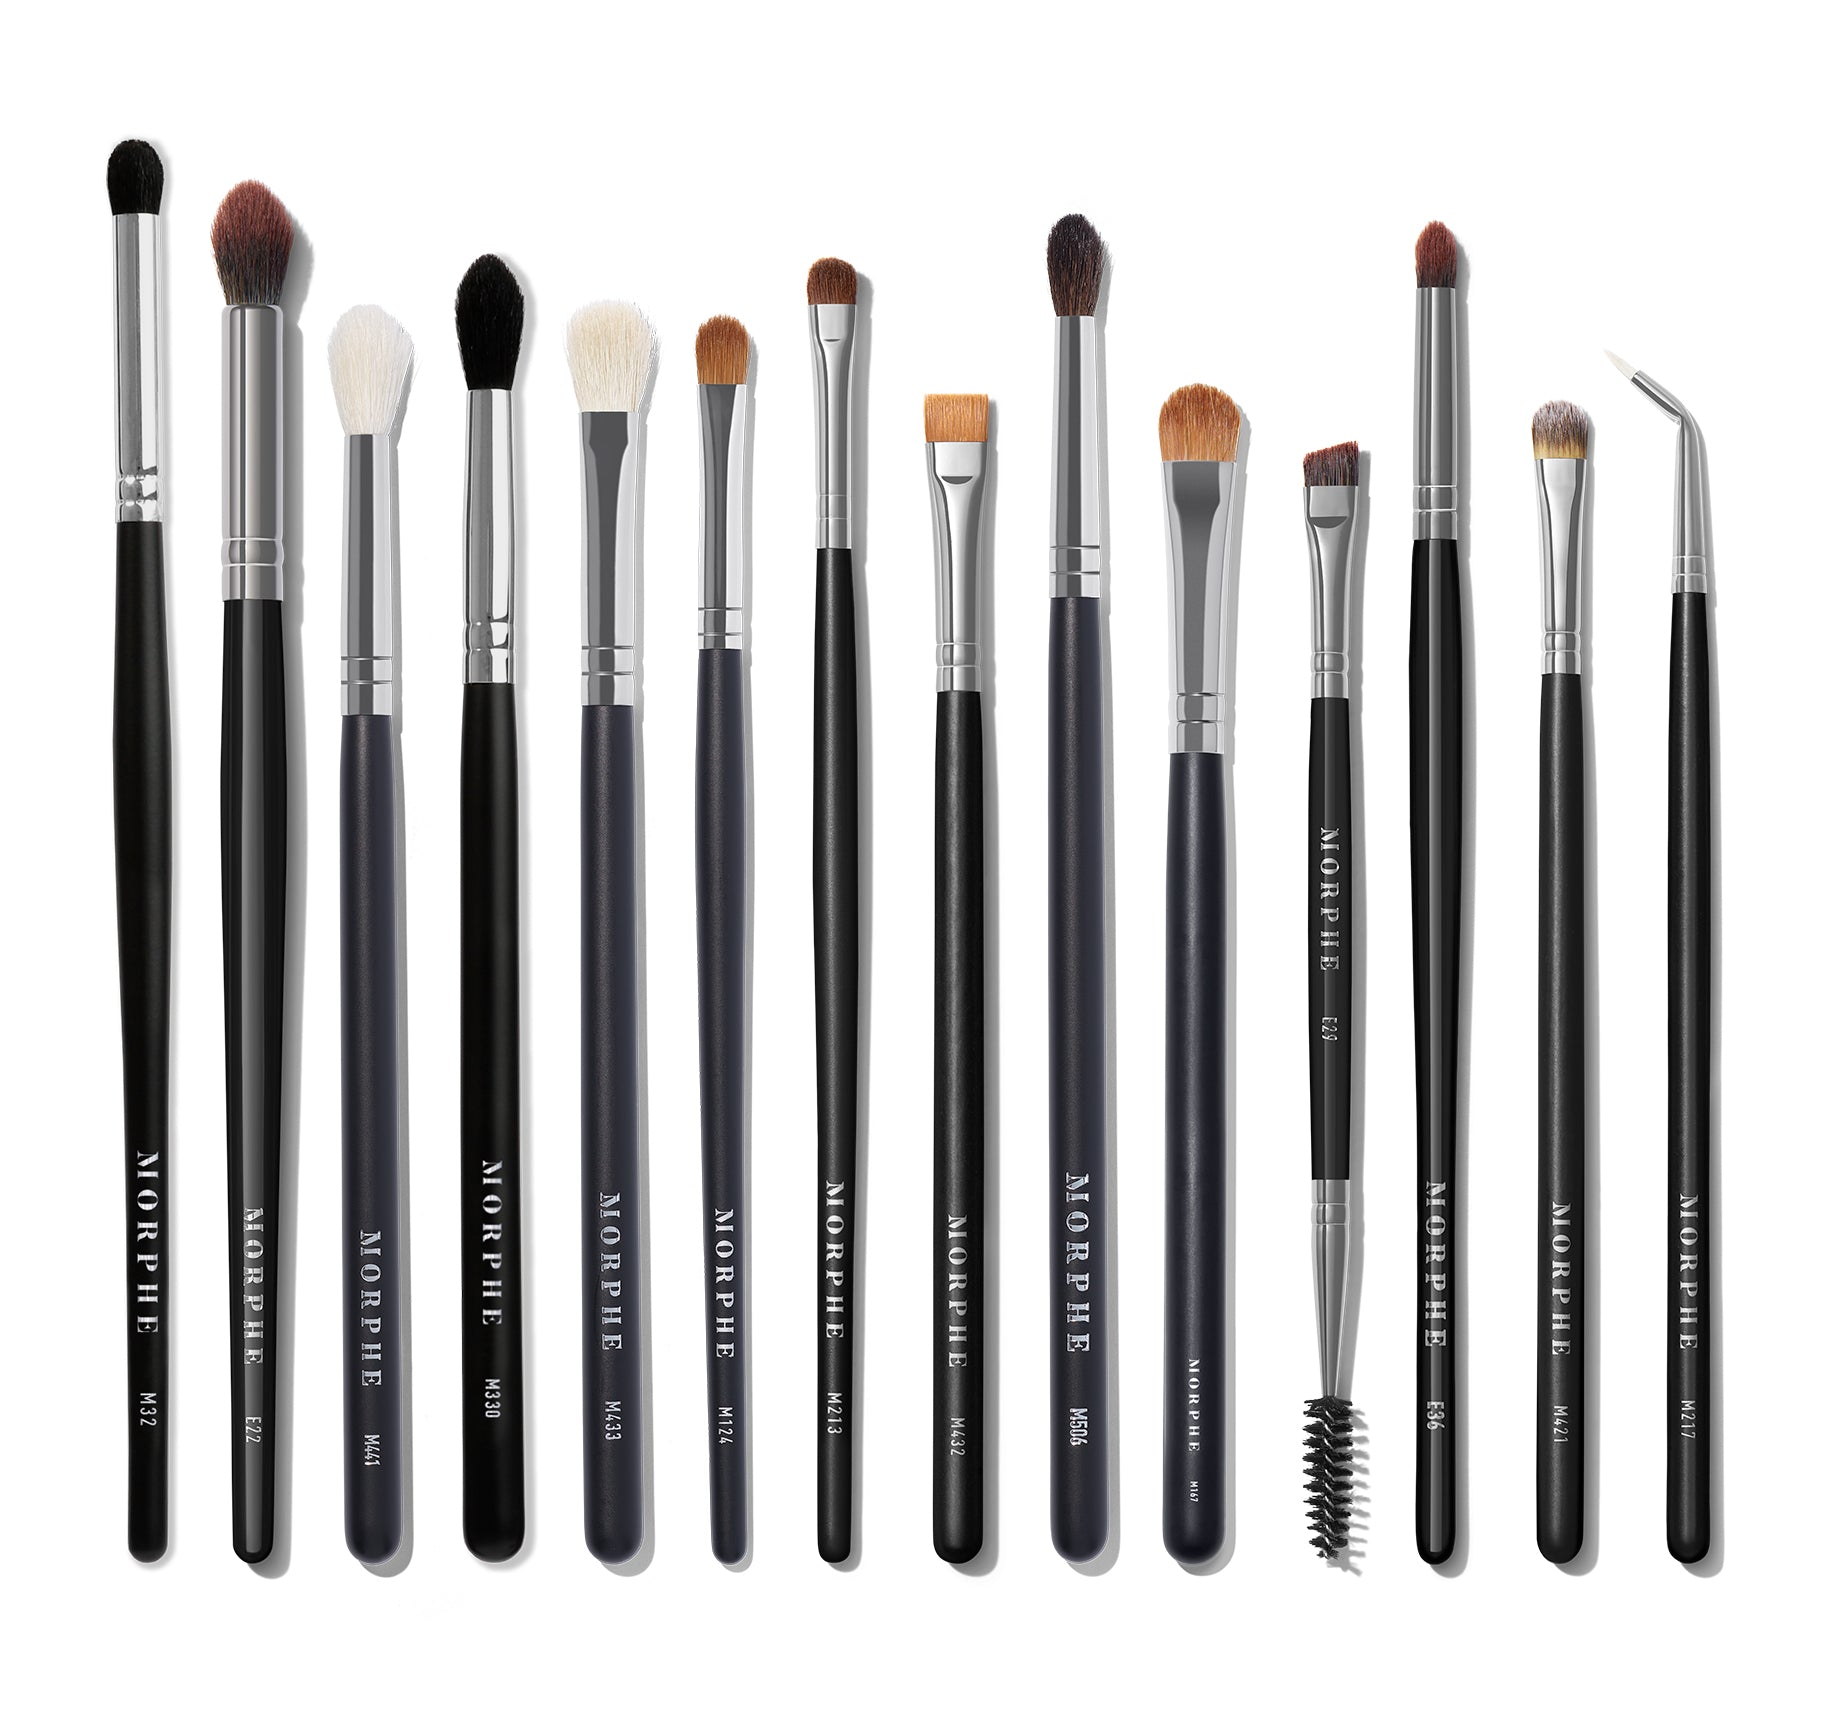 BABE FAVES EYE BRUSH SET, view larger image